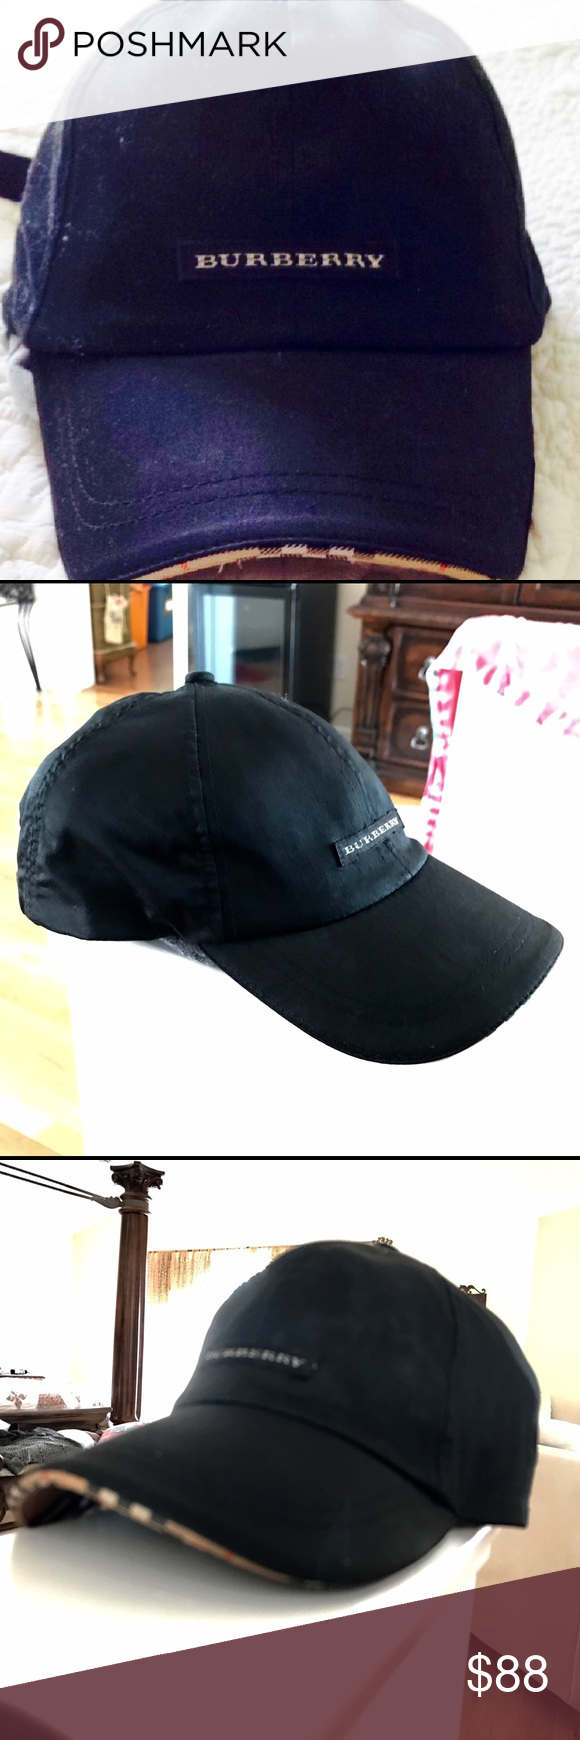 Burberry Baseball Cap Authentic Burberry. GUC. Black Golf cap. Cotton.  Adjustable strap buckle. Classic Burberry plaid lined bill and piping.  Burberry ... 3db5cd009f2